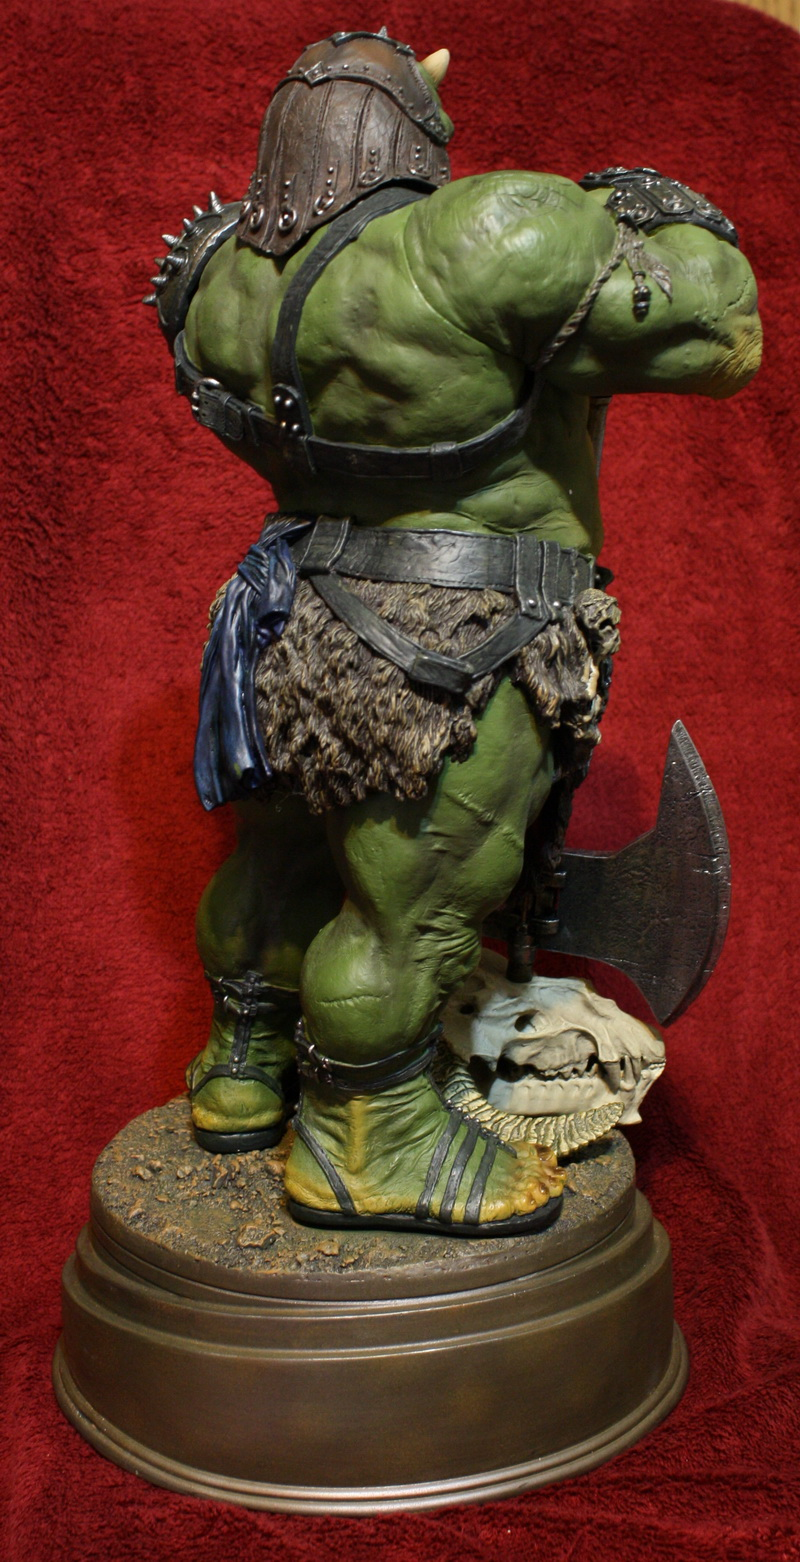 STAR WARS: GAMORREAN EXECUTIONER Mythos statue 20